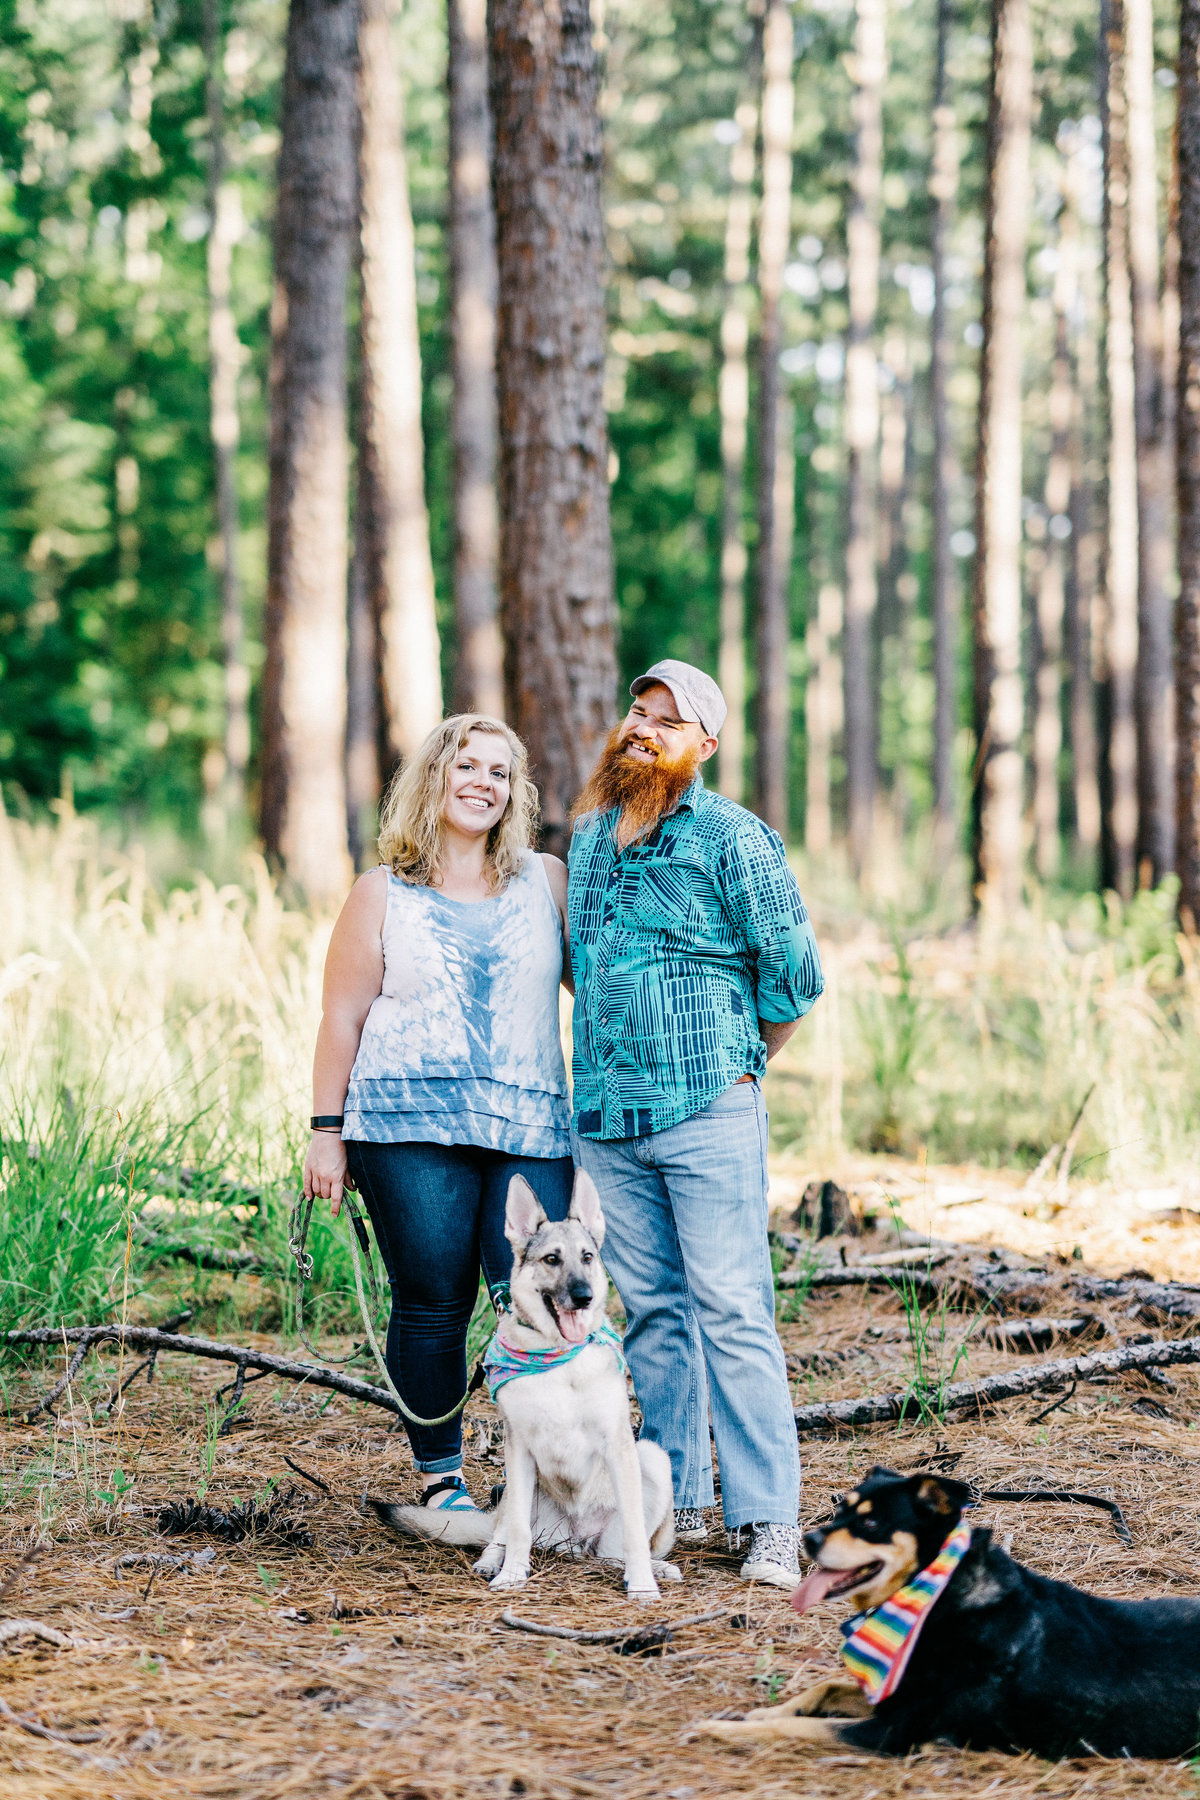 Kathy+Jonah_DukeForestPortraitSession-9